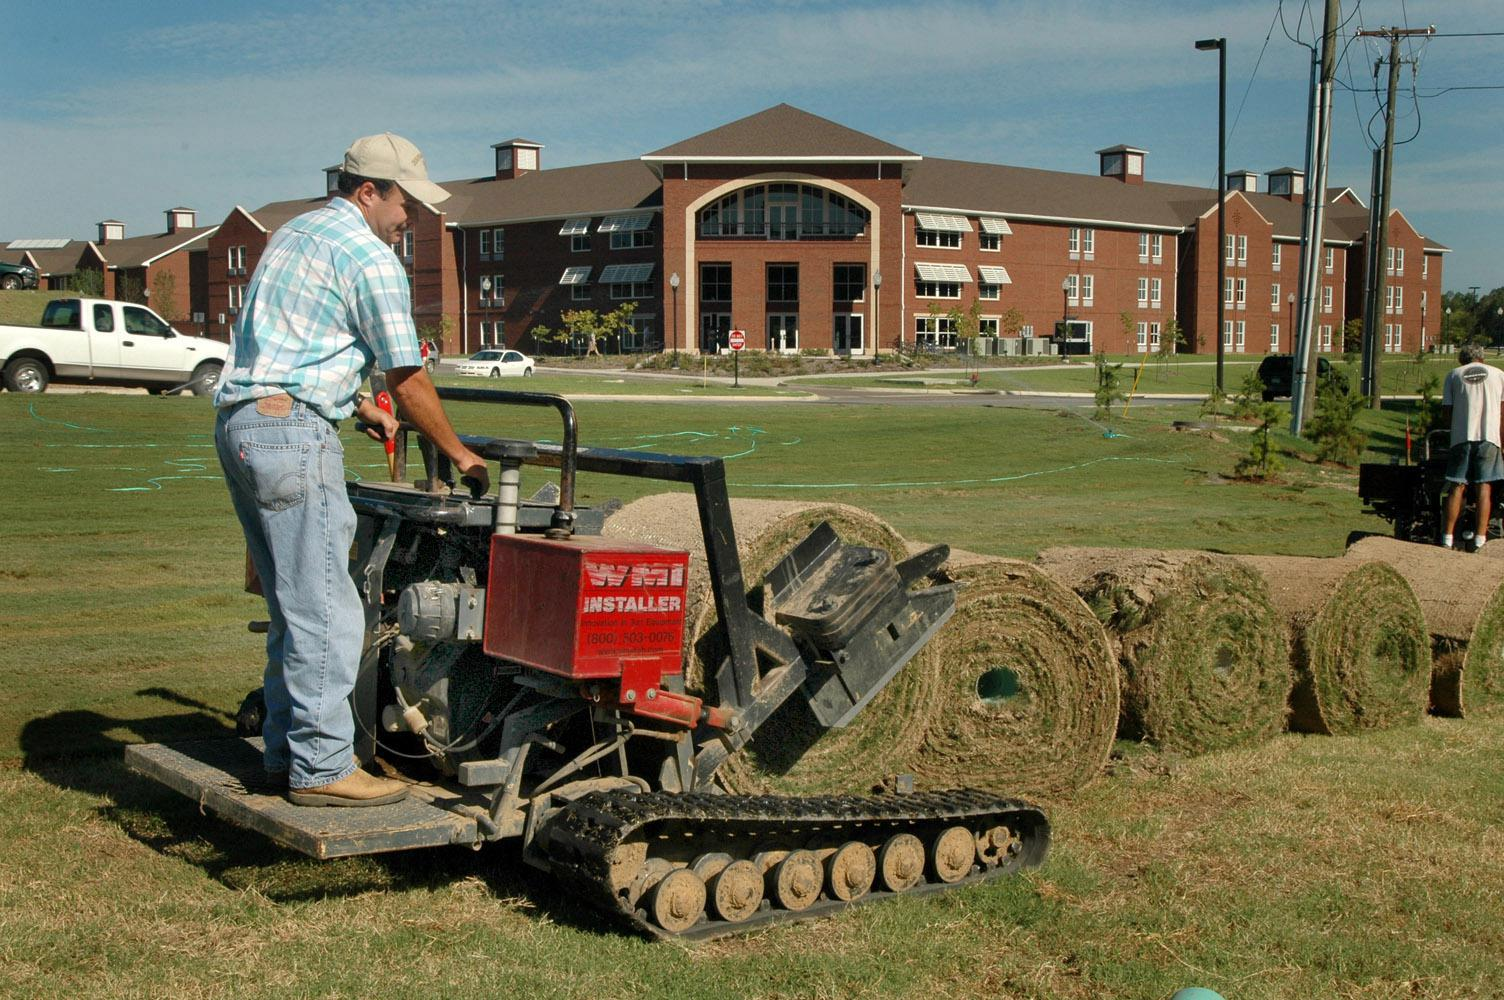 Steve Hughes lays down sod near one of Mississippi State University's new residence halls.  Hughes Sod Installation, of Lee County, placed about 10,000 yards of sod on the campus the week before MSU hosts the first football game of the 2007 season.  (Photo by Linda Breazeale)